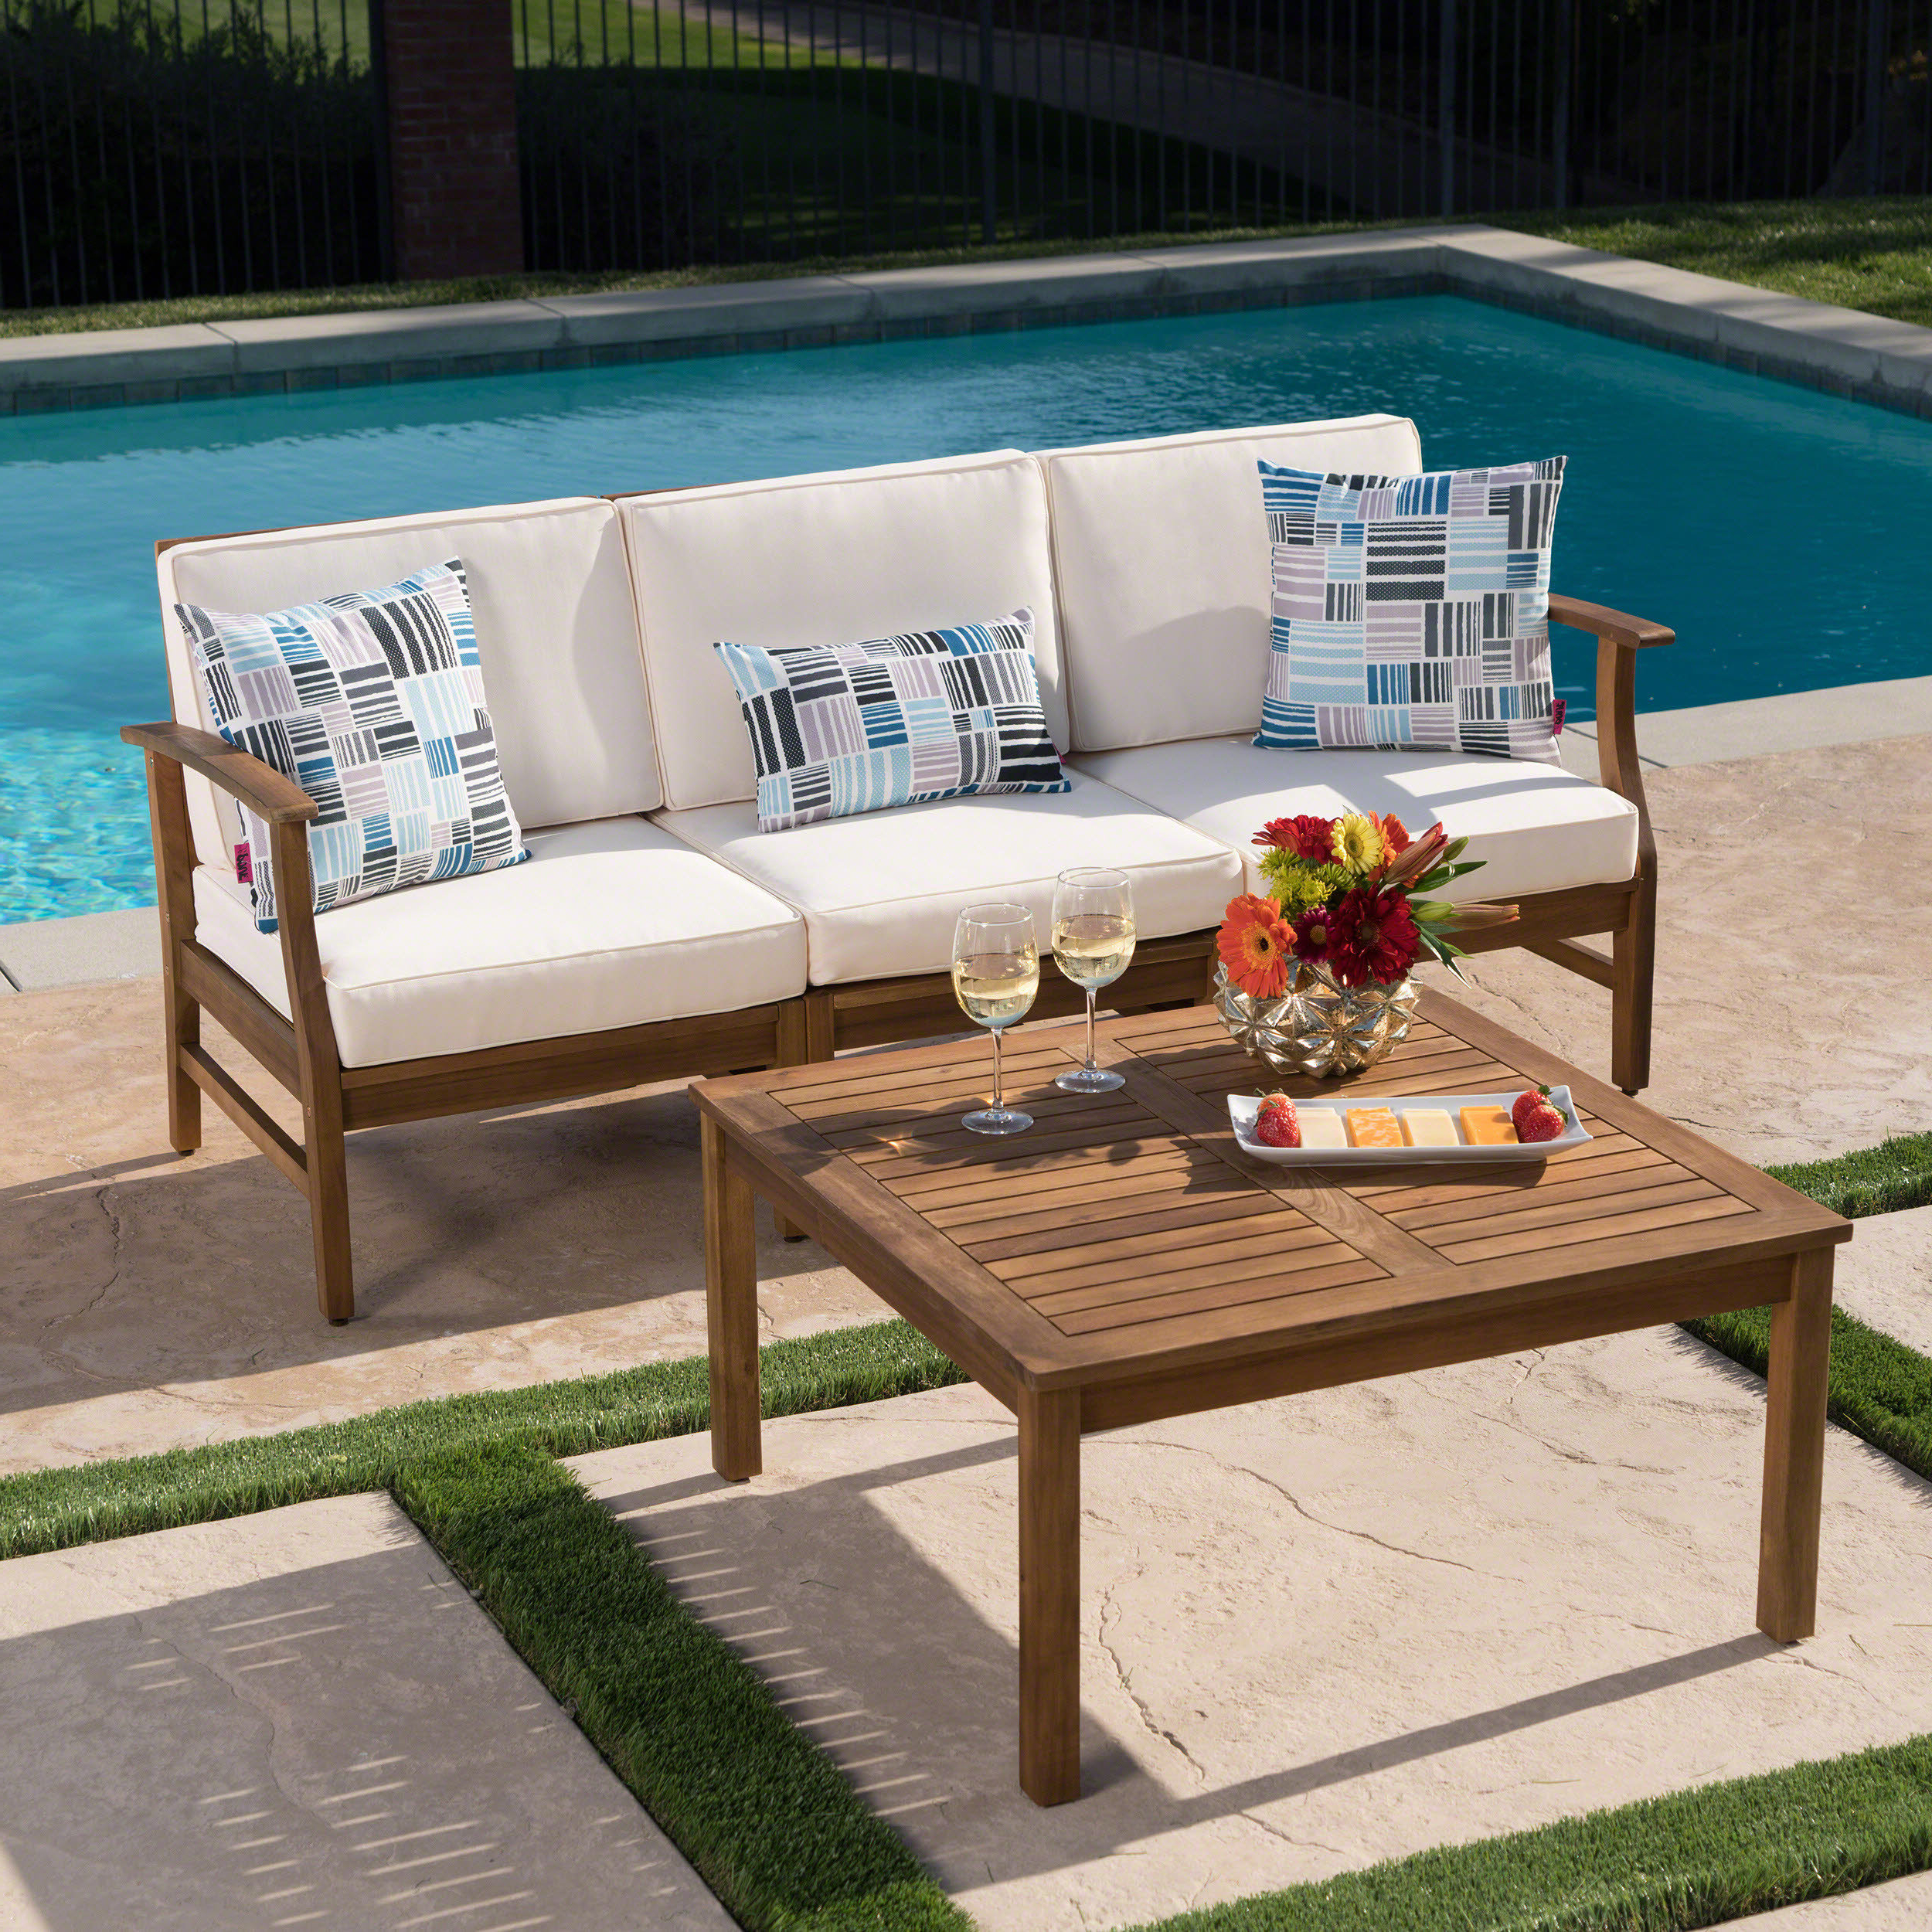 Antonia Outdoor 2 Piece Sofa Set With Cushions Pertaining To Well Liked Antonia Teak Patio Sectionals With Cushions (Gallery 7 of 25)